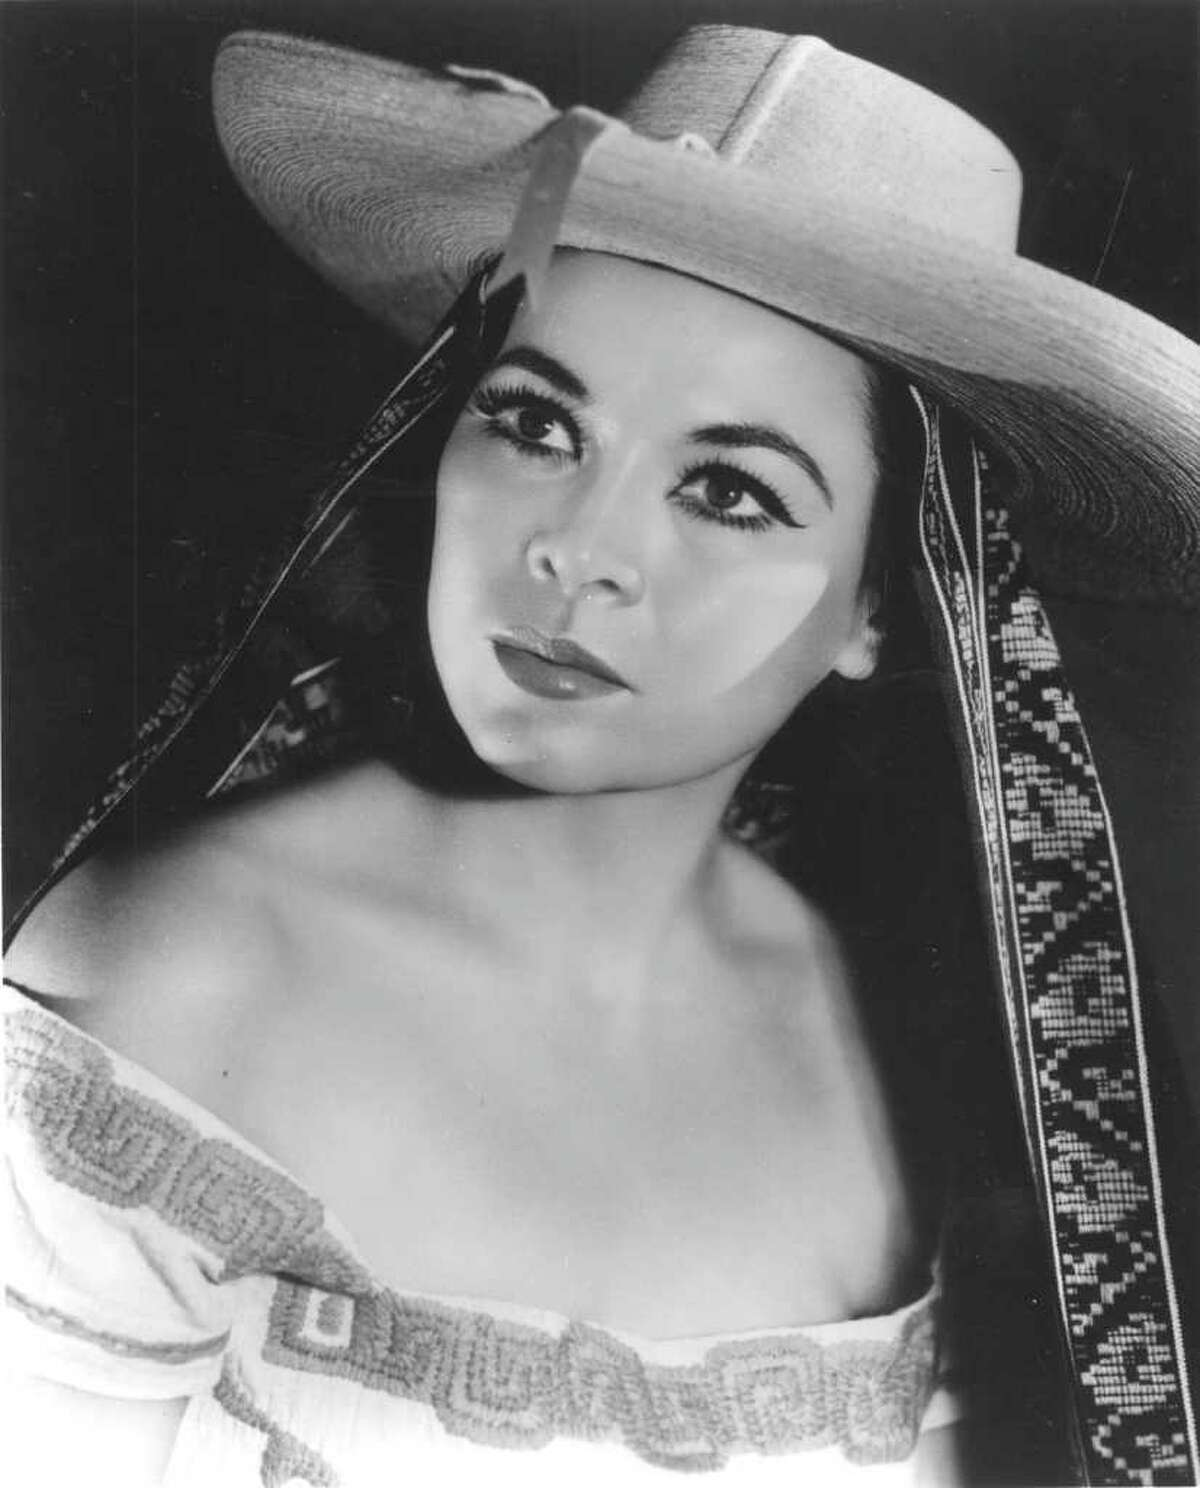 Rosita Fernandez, (Monterrey, 1919-San Antonio, Texas, 2006) the Mexican-born singer was named as